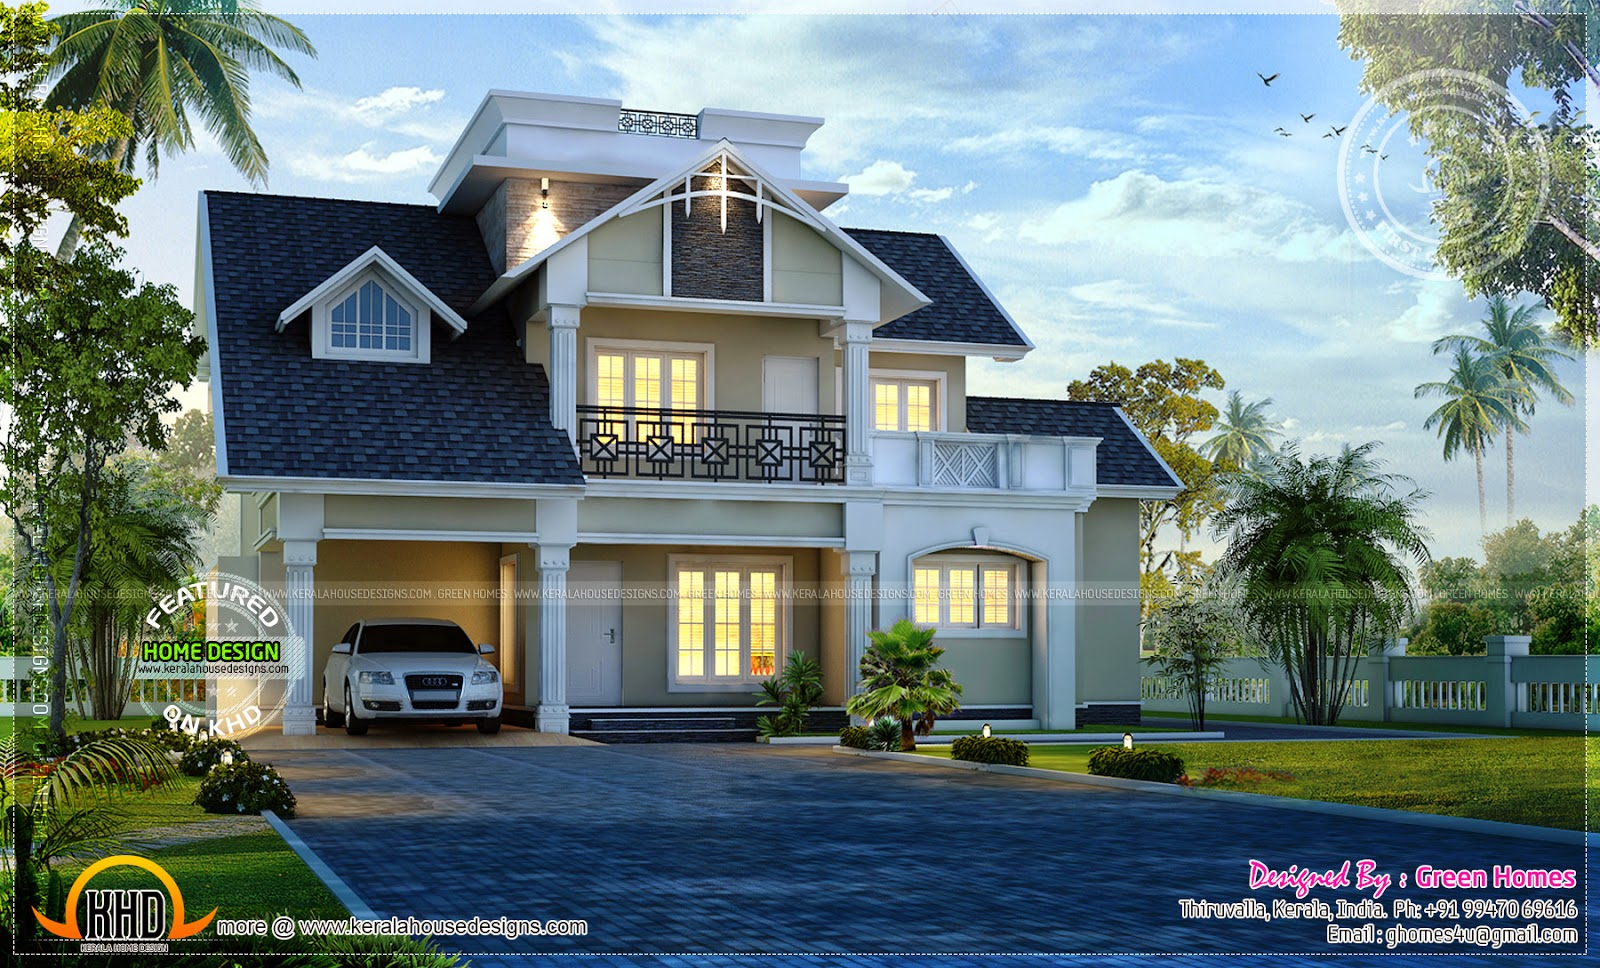 Awesome modern house exterior kerala home design and for Awesome house blueprints